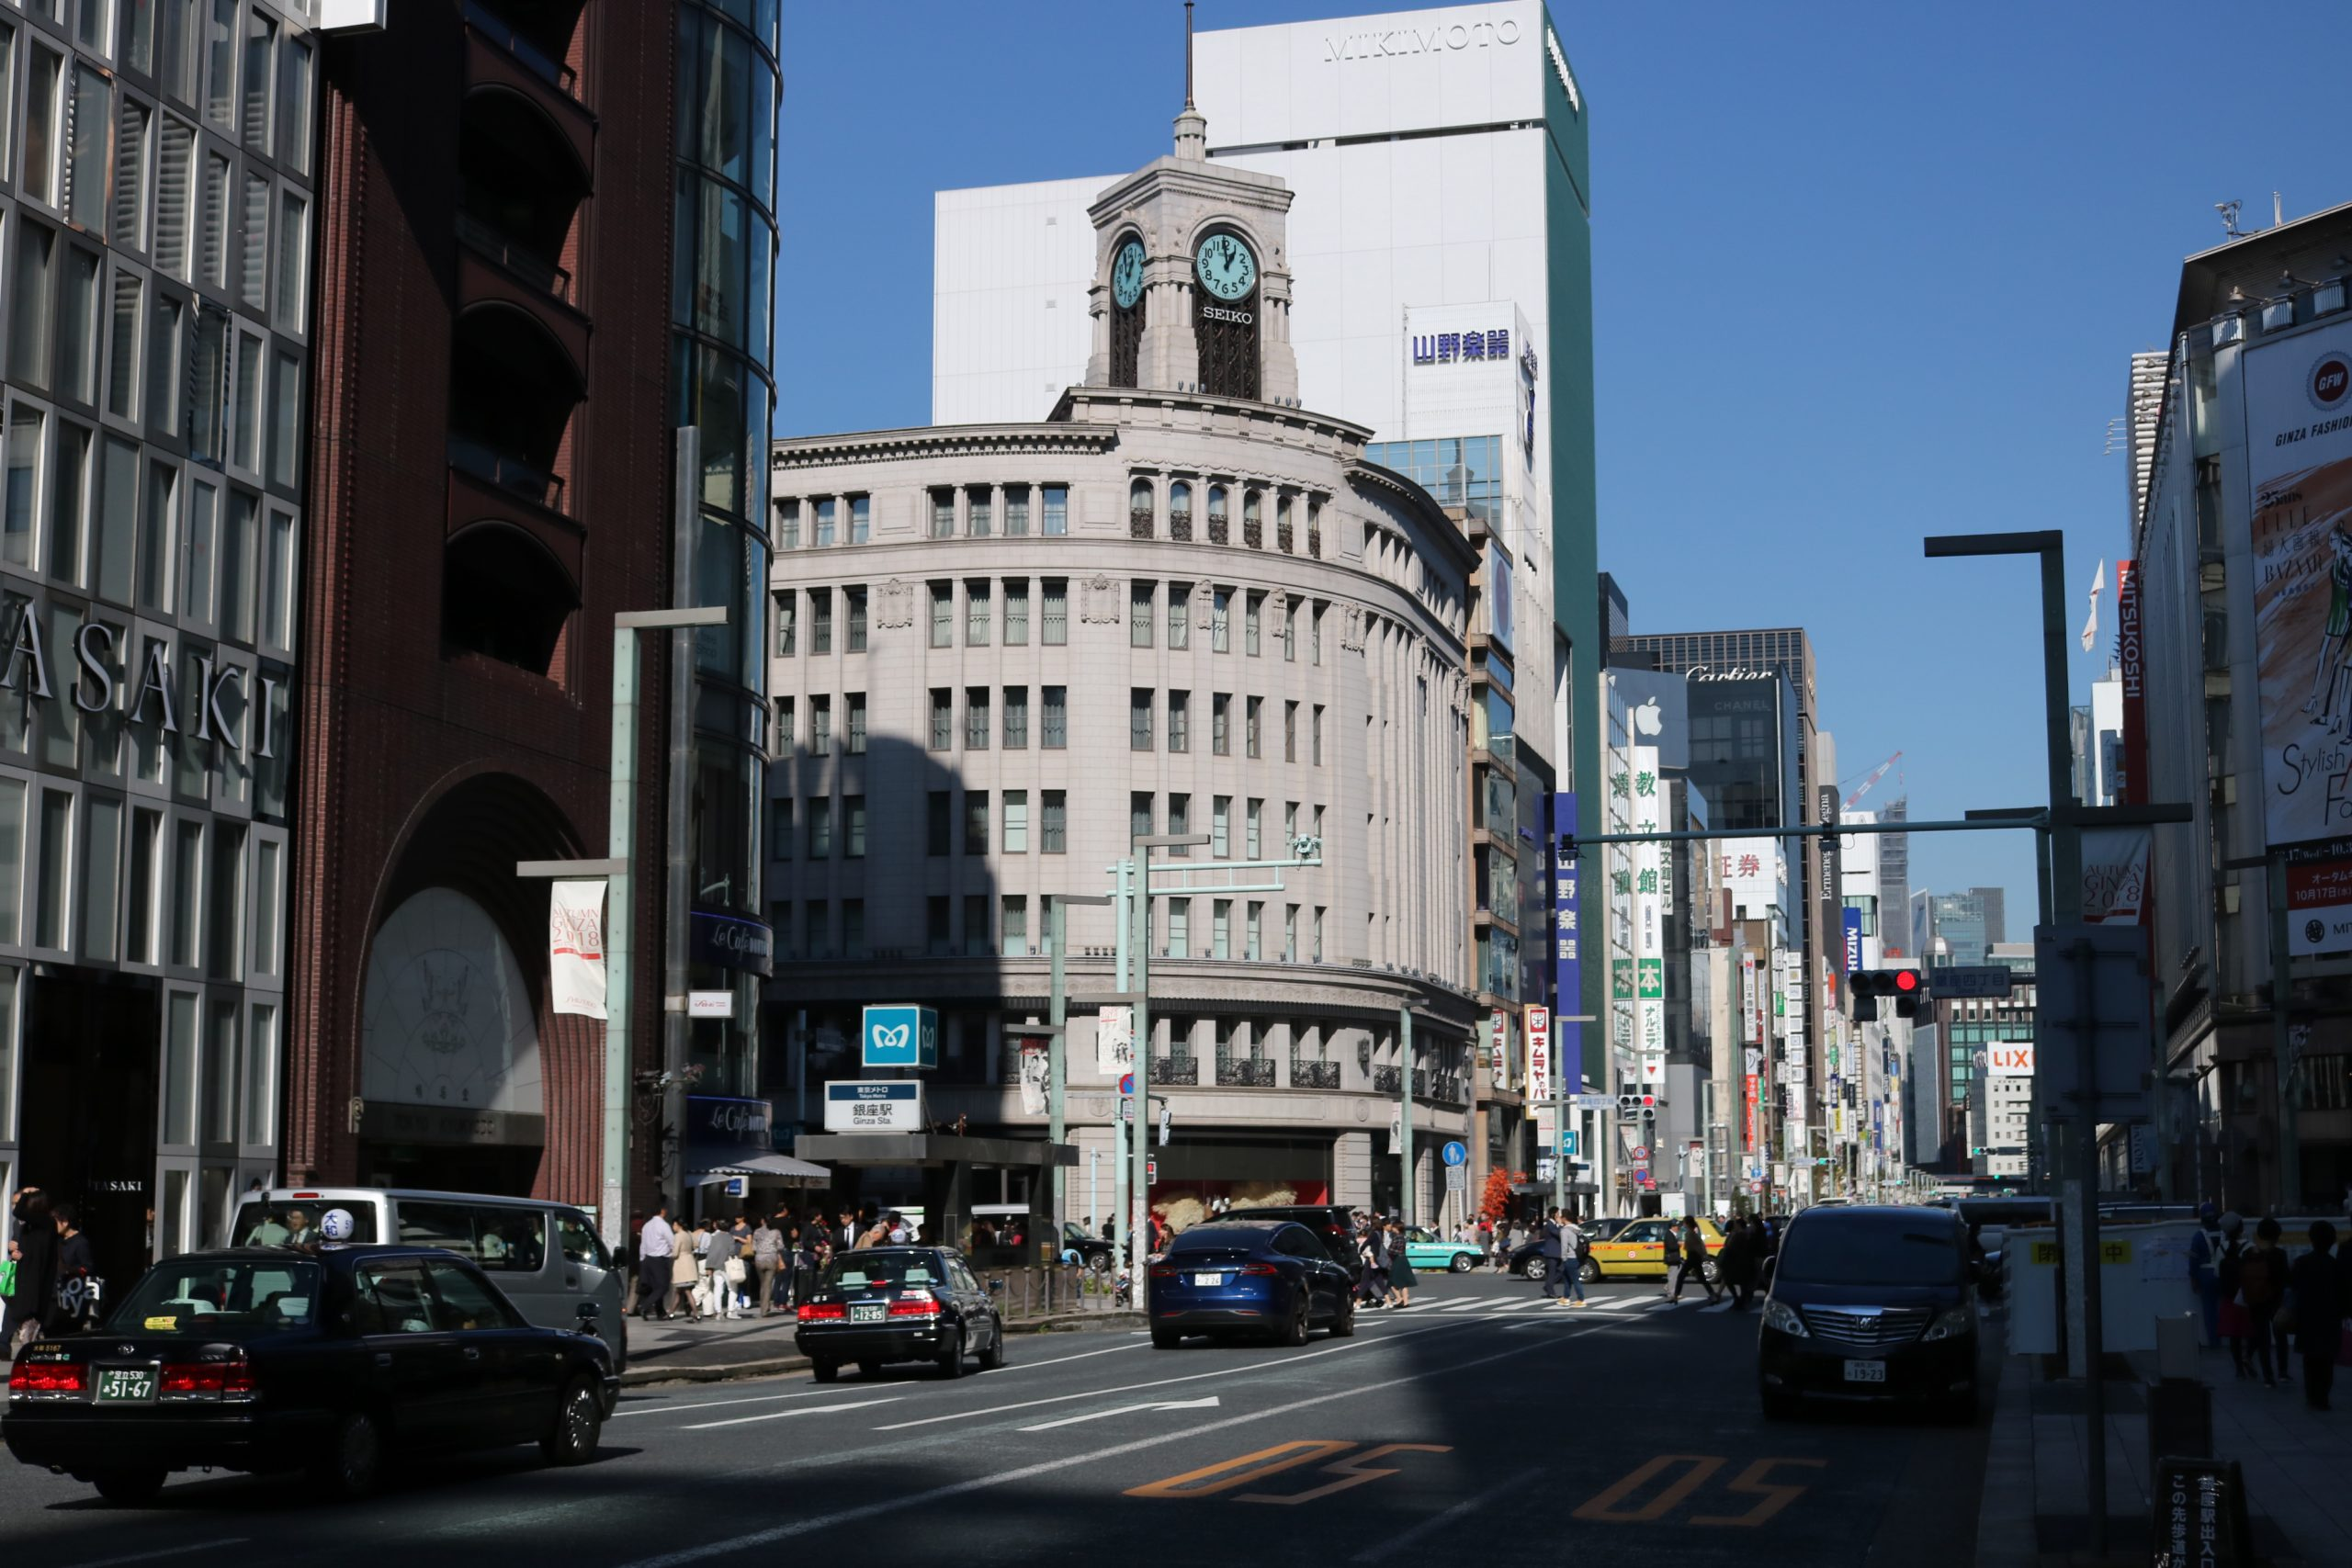 Moving out of Japan- things to do